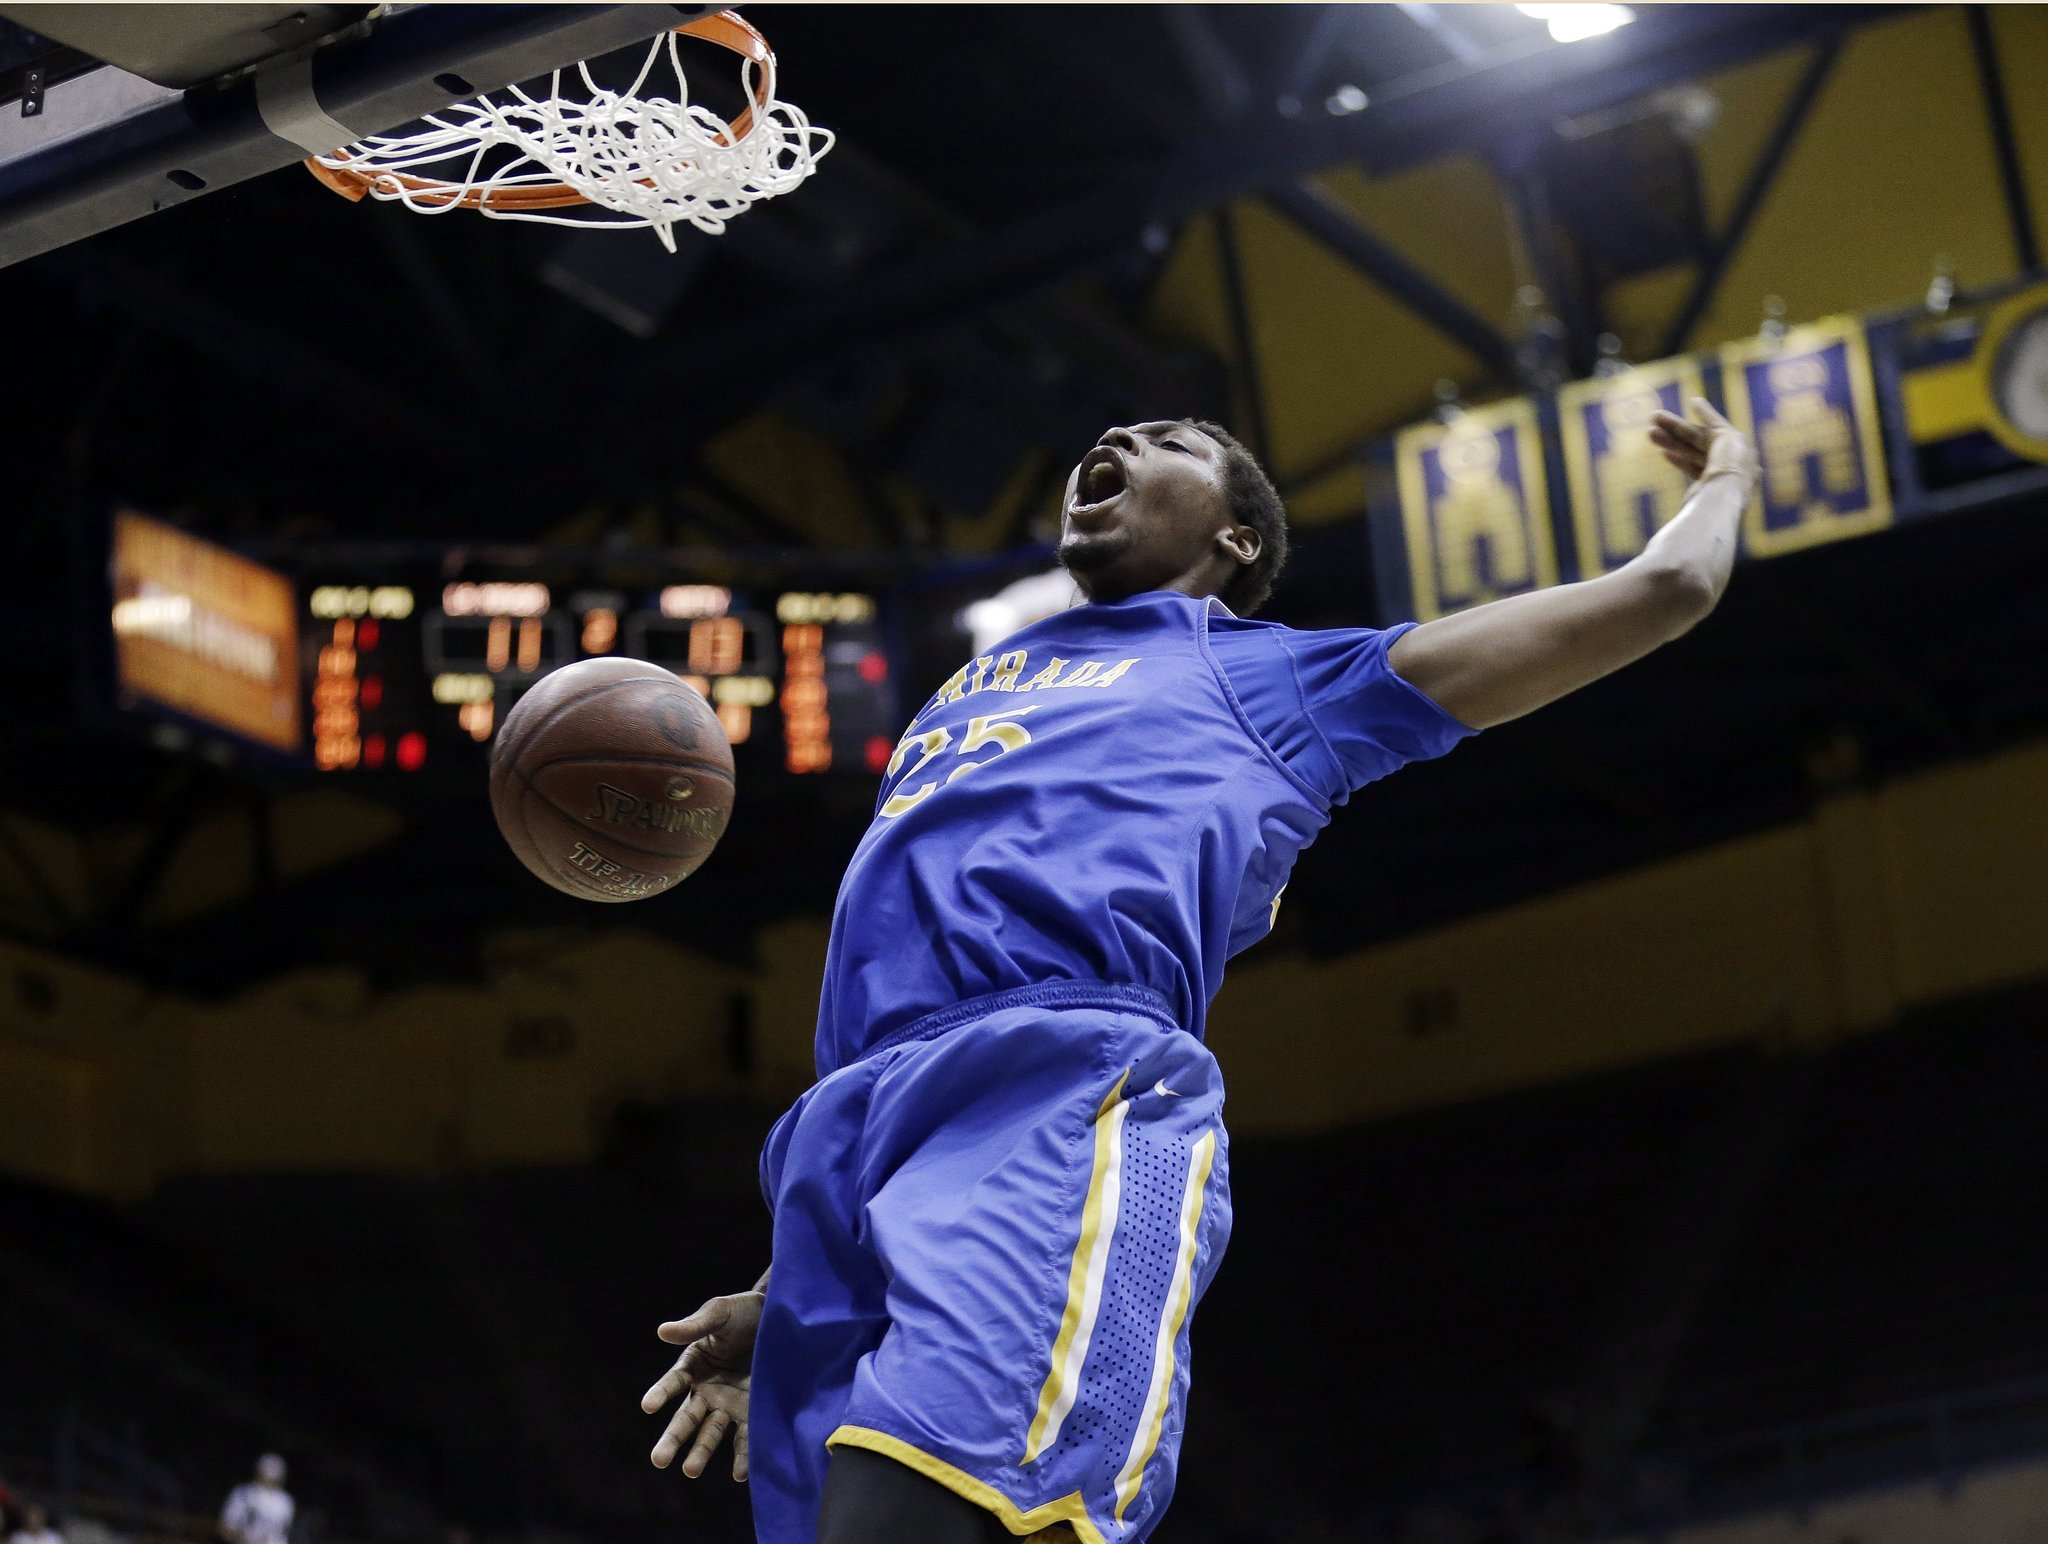 La Mirada defeats Mitty, 71-70 in double OT, for its first state title